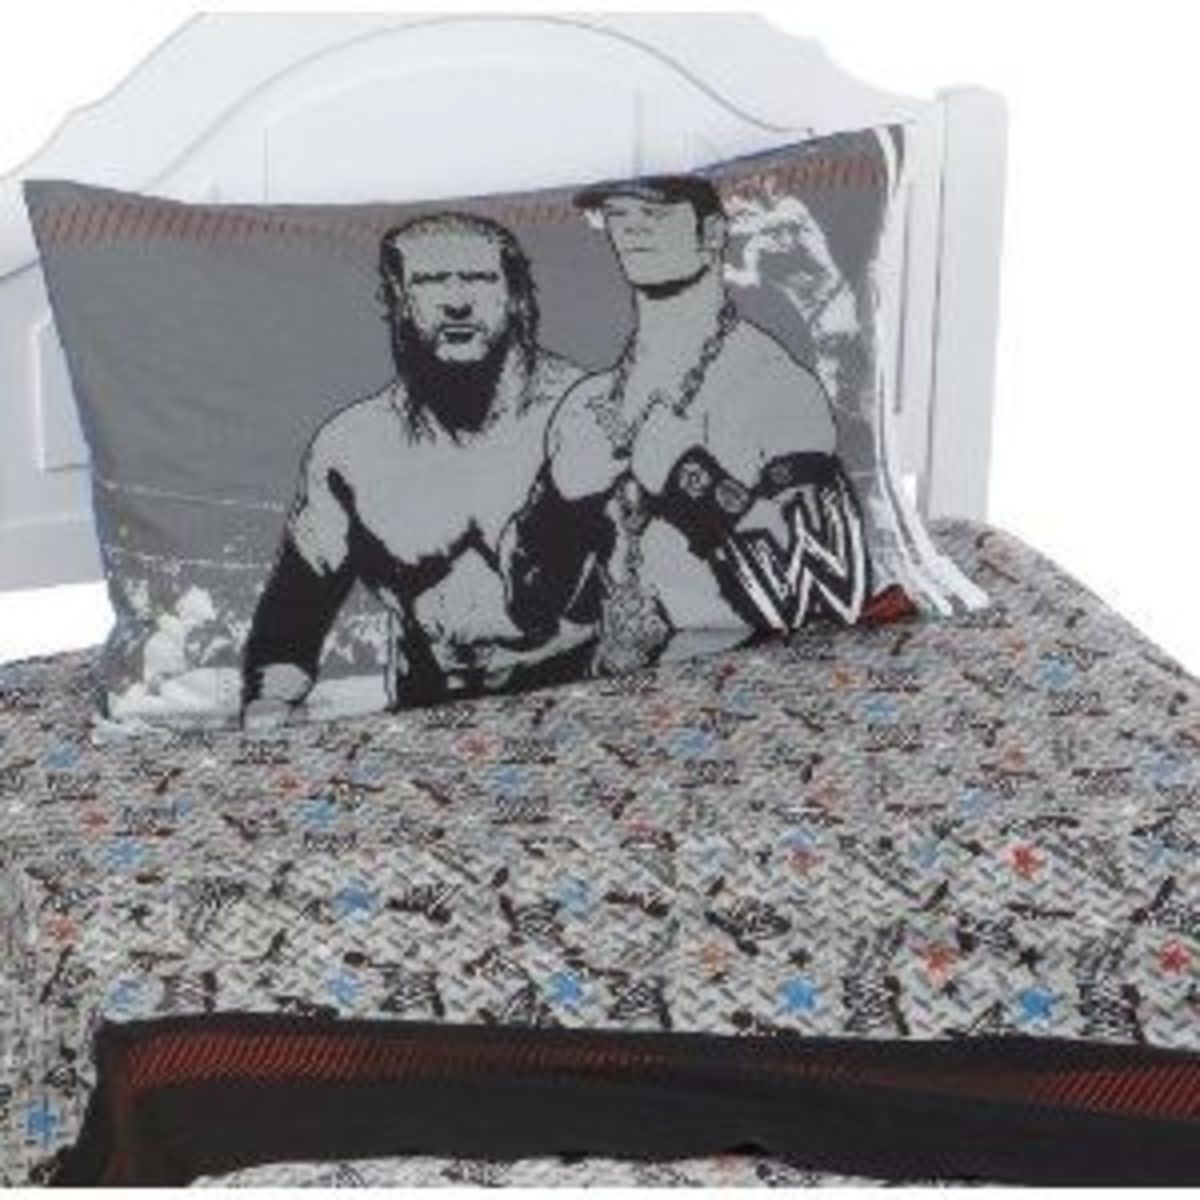 WWE Ringside Sheet Set